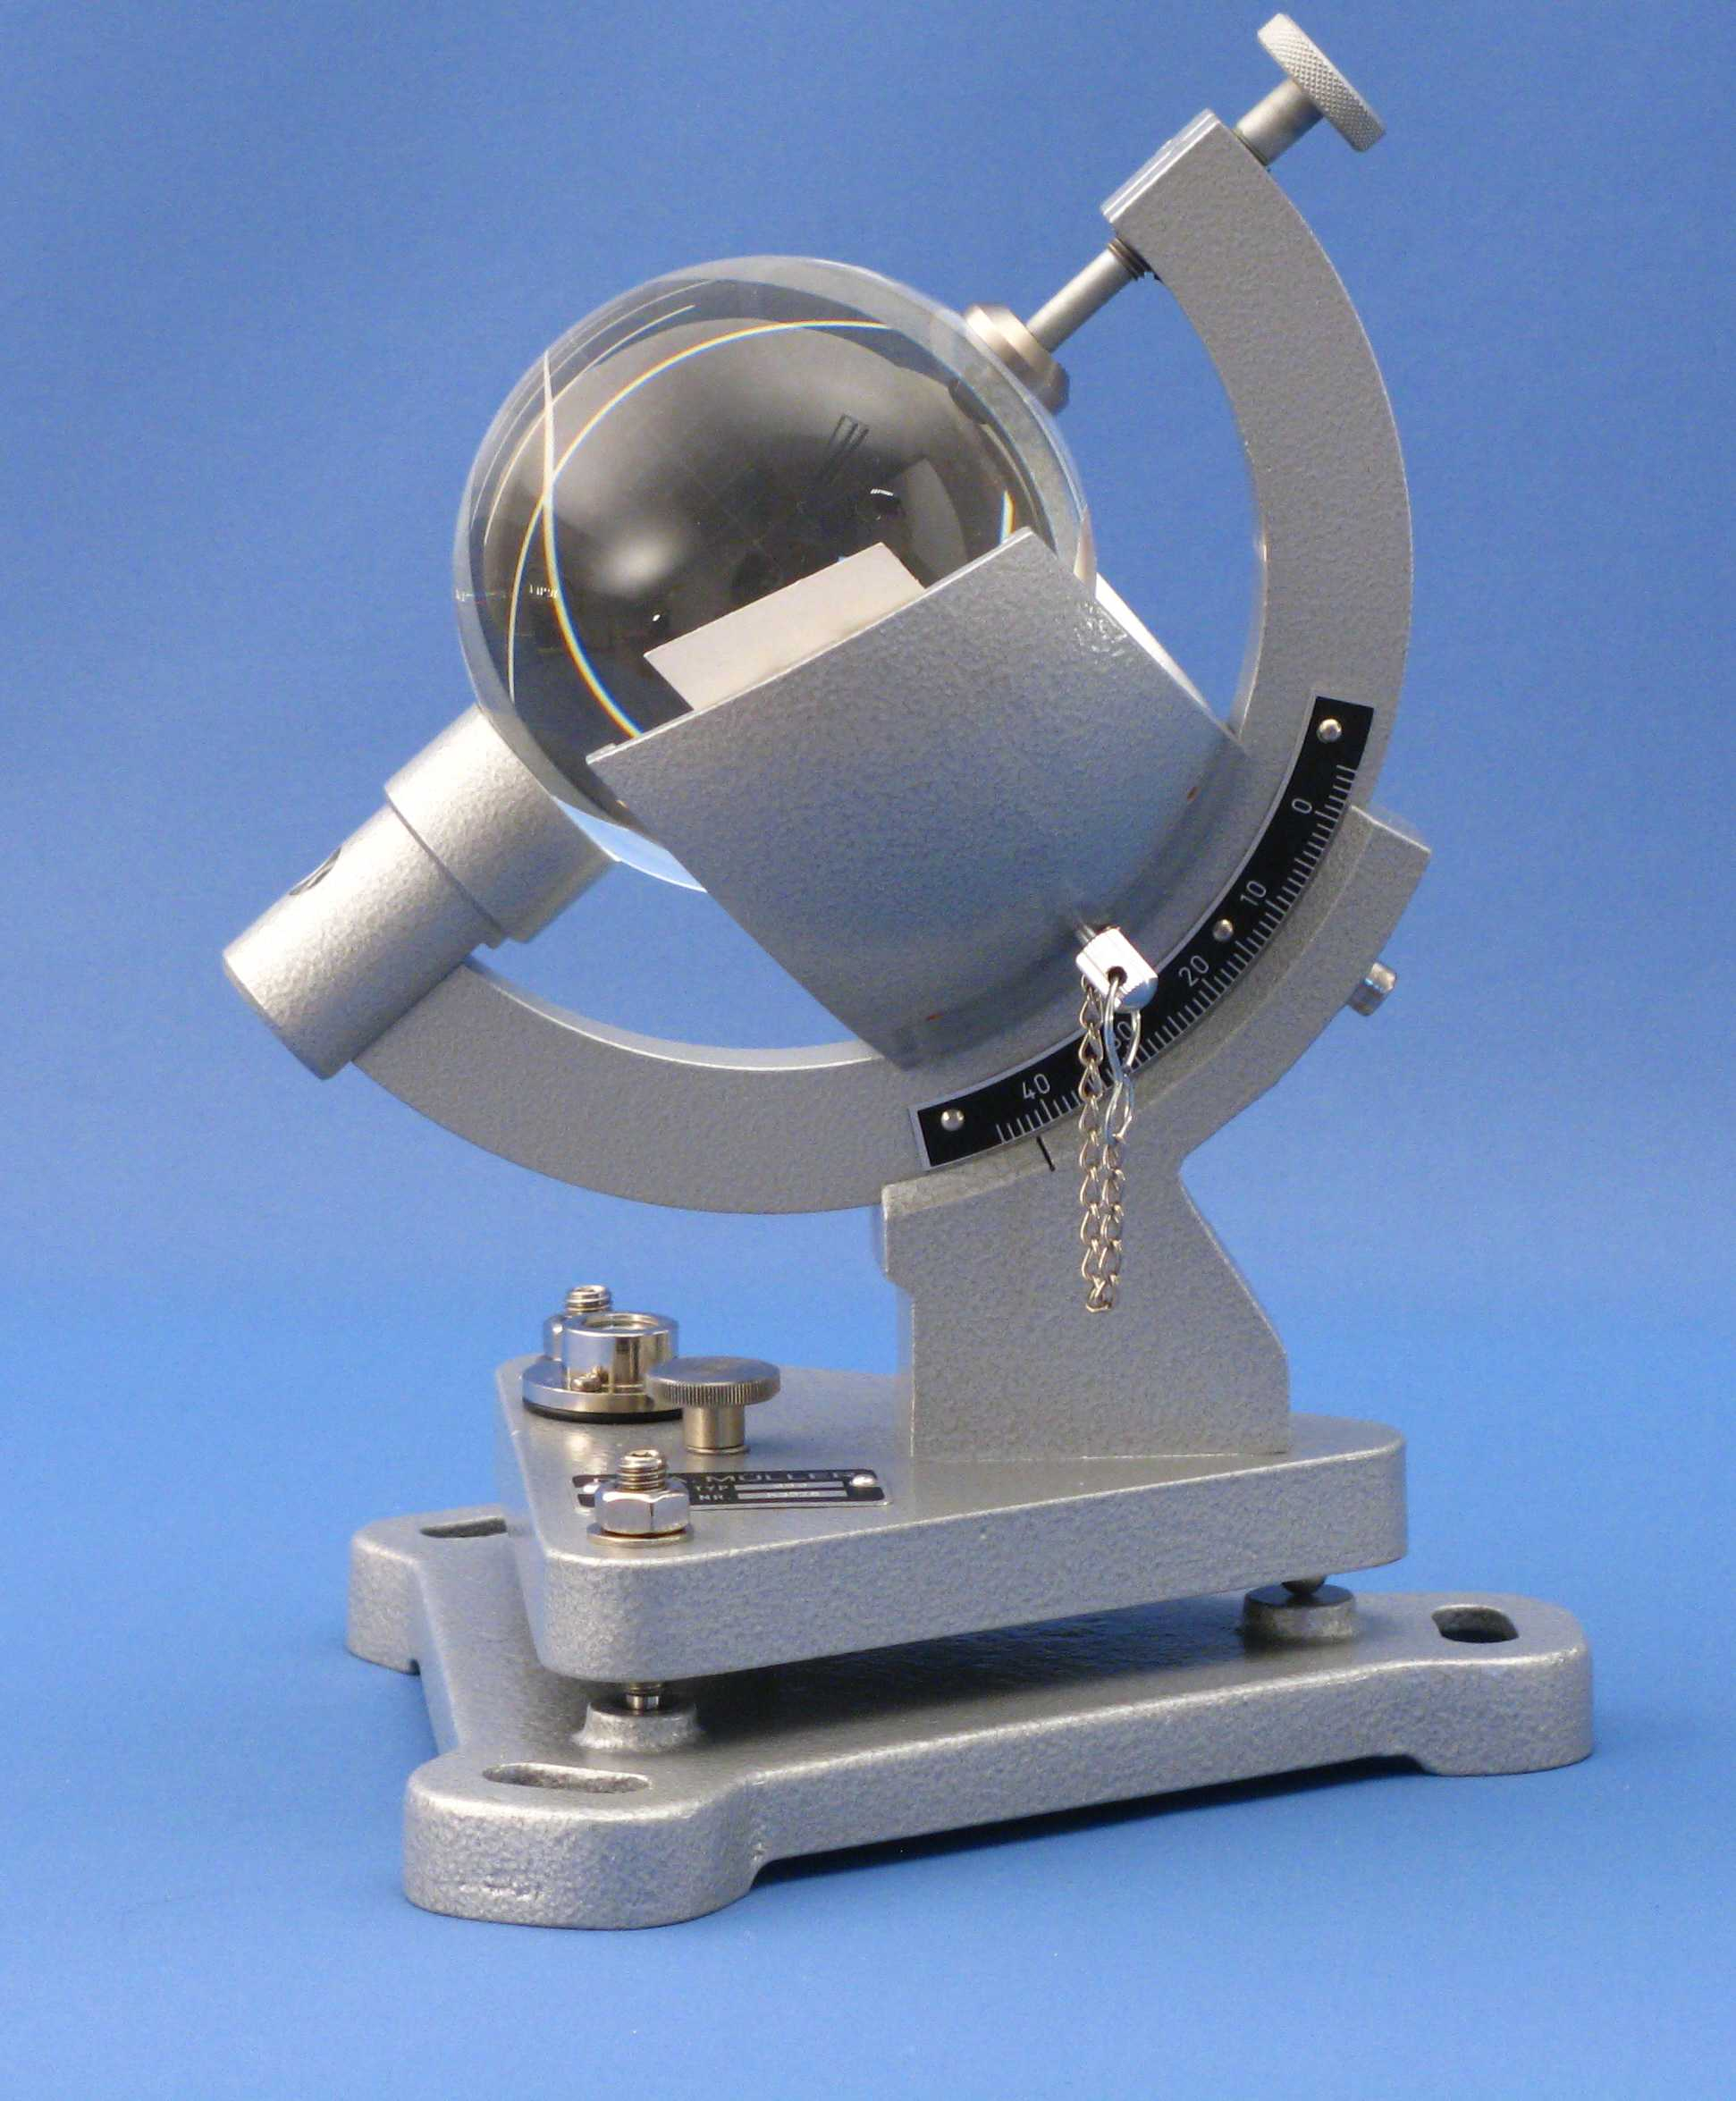 96C -- Sunshine Recorder - Campbell-Stokes Type